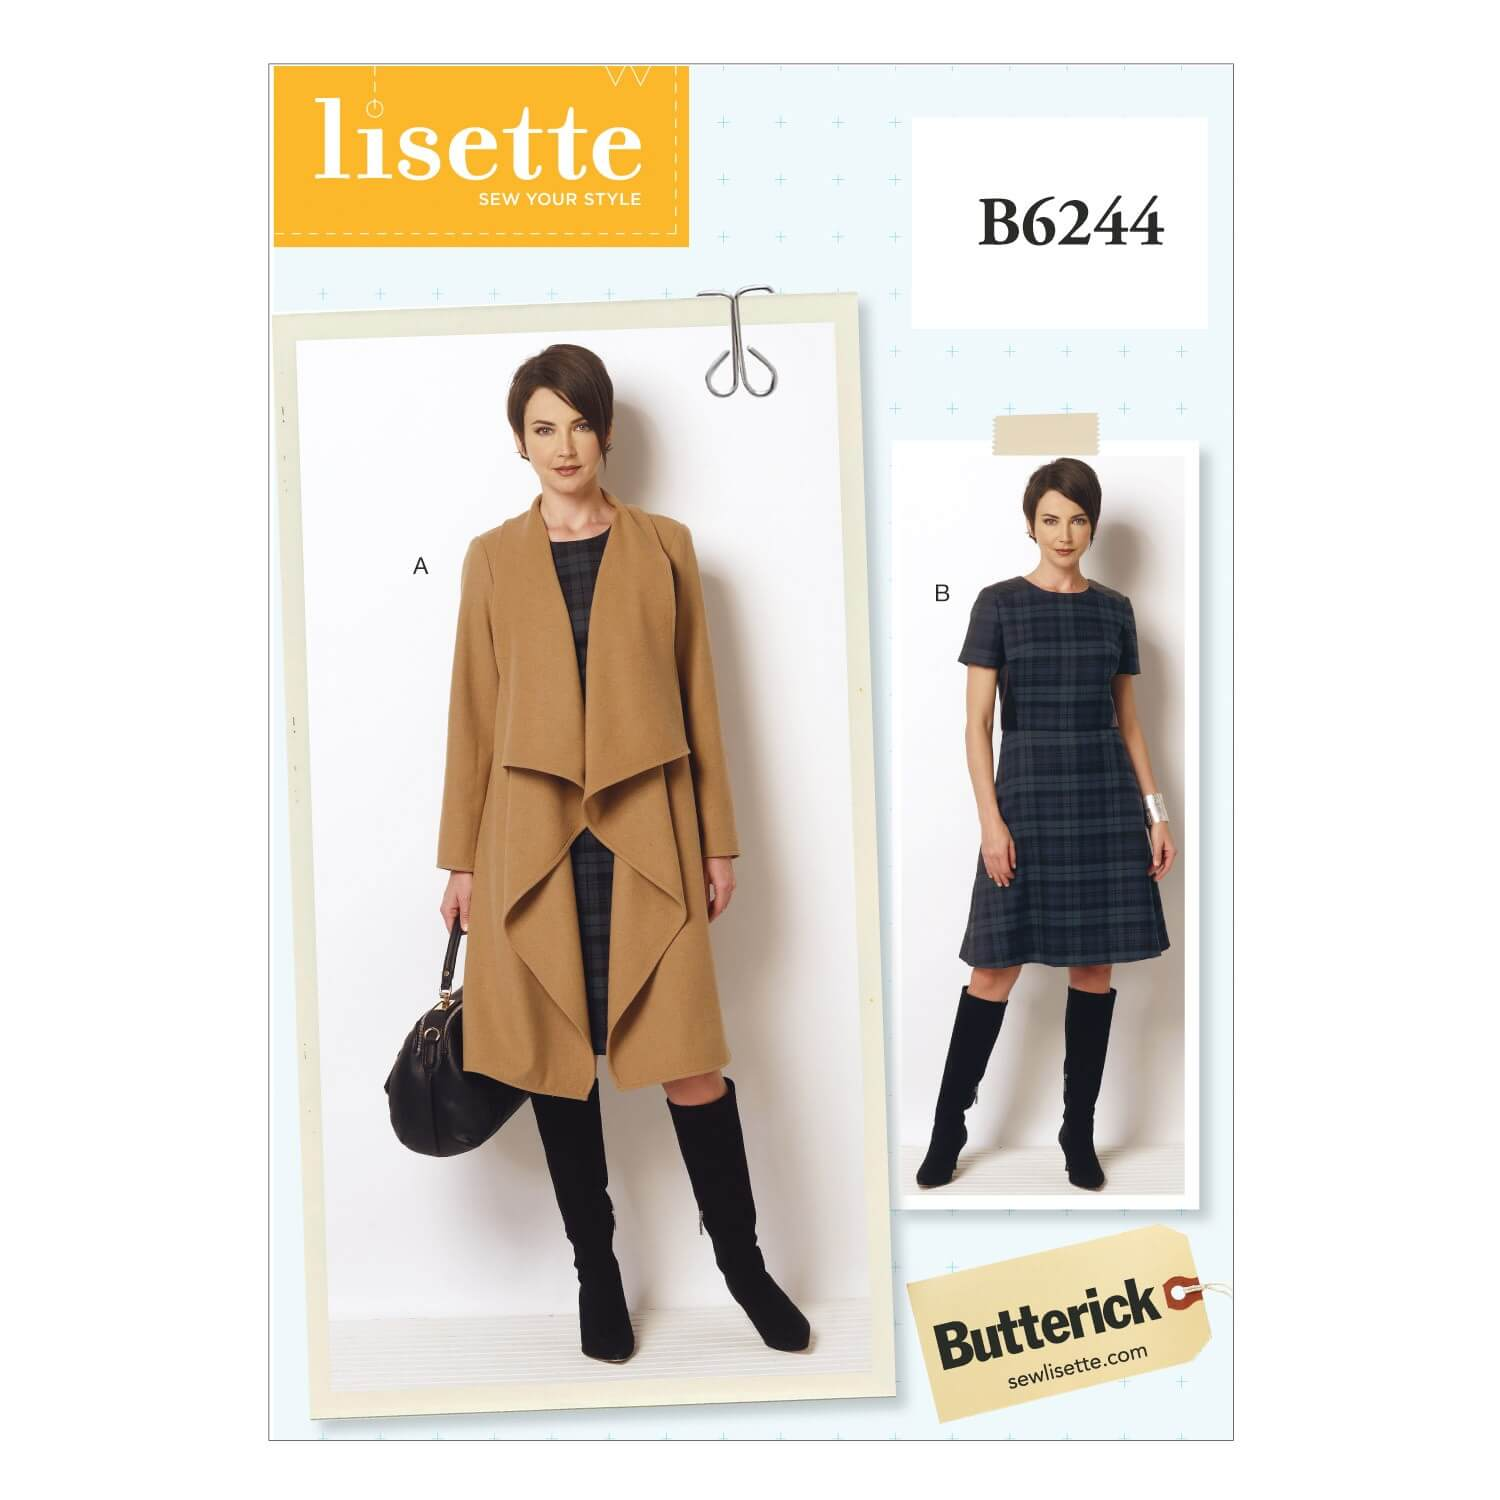 Butterick Sewing Pattern 6244 Misses' Womens coat & Dress